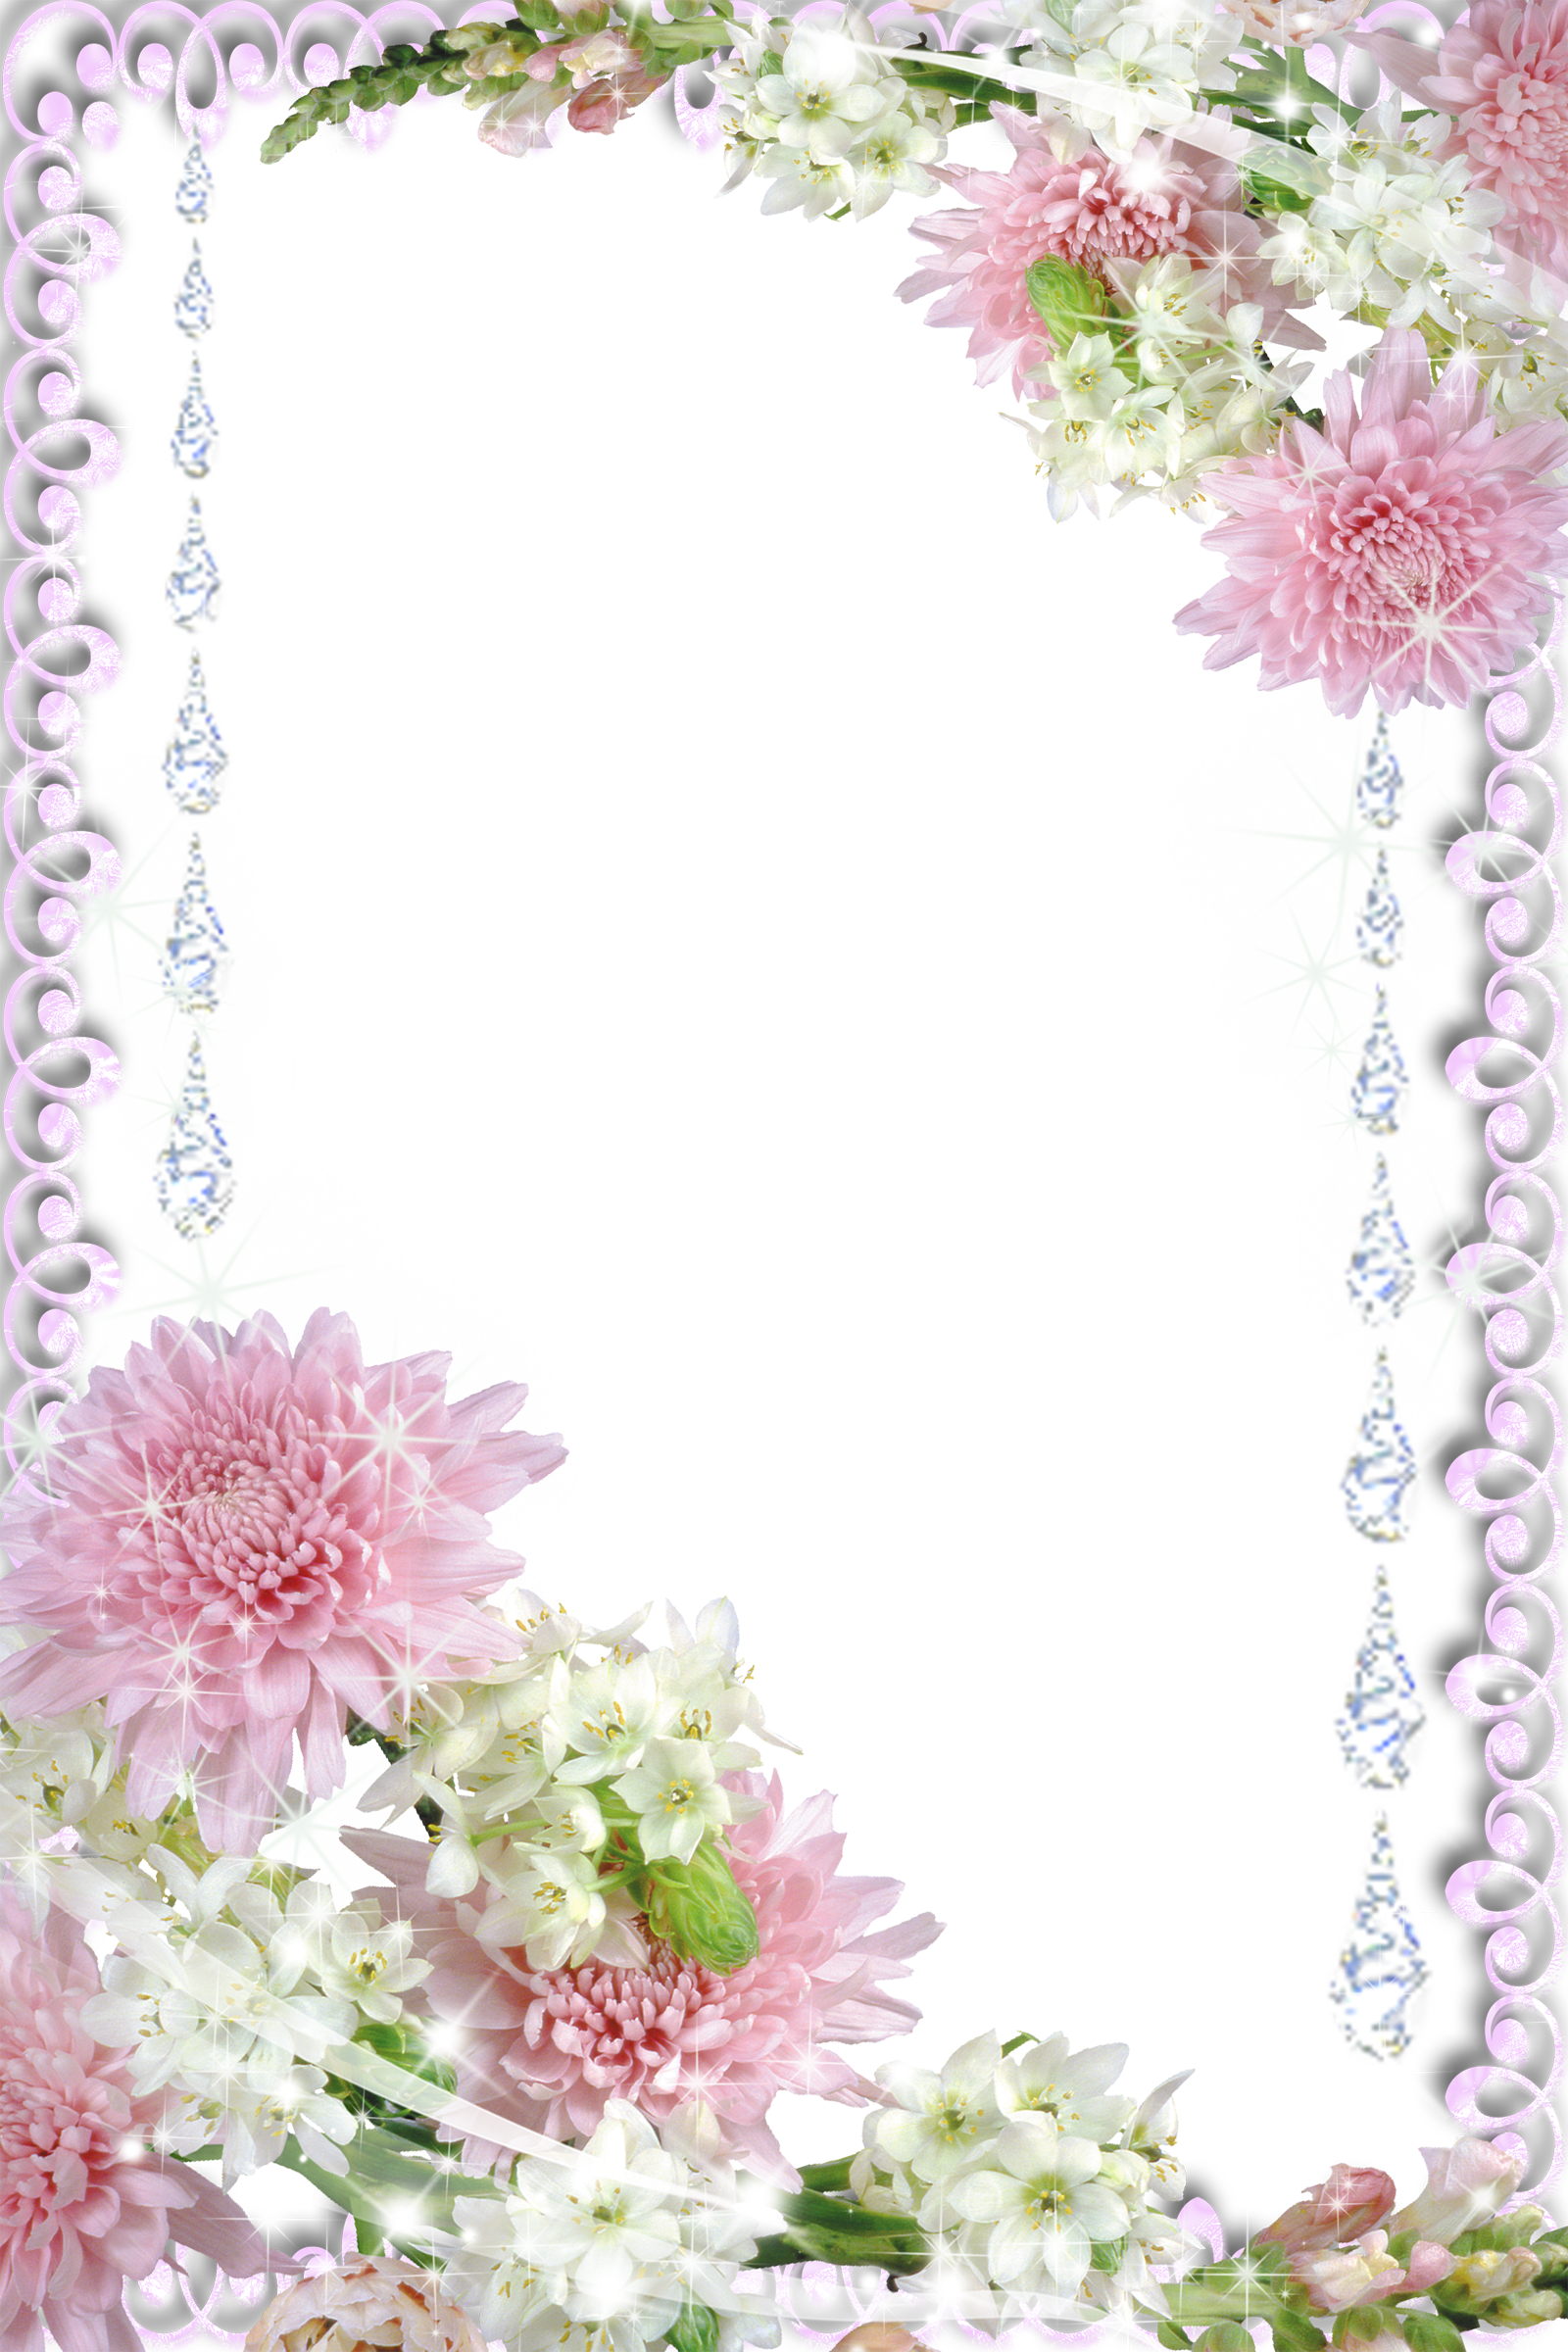 Real Flowers Transparent PNG Photo Frame | Borders ...